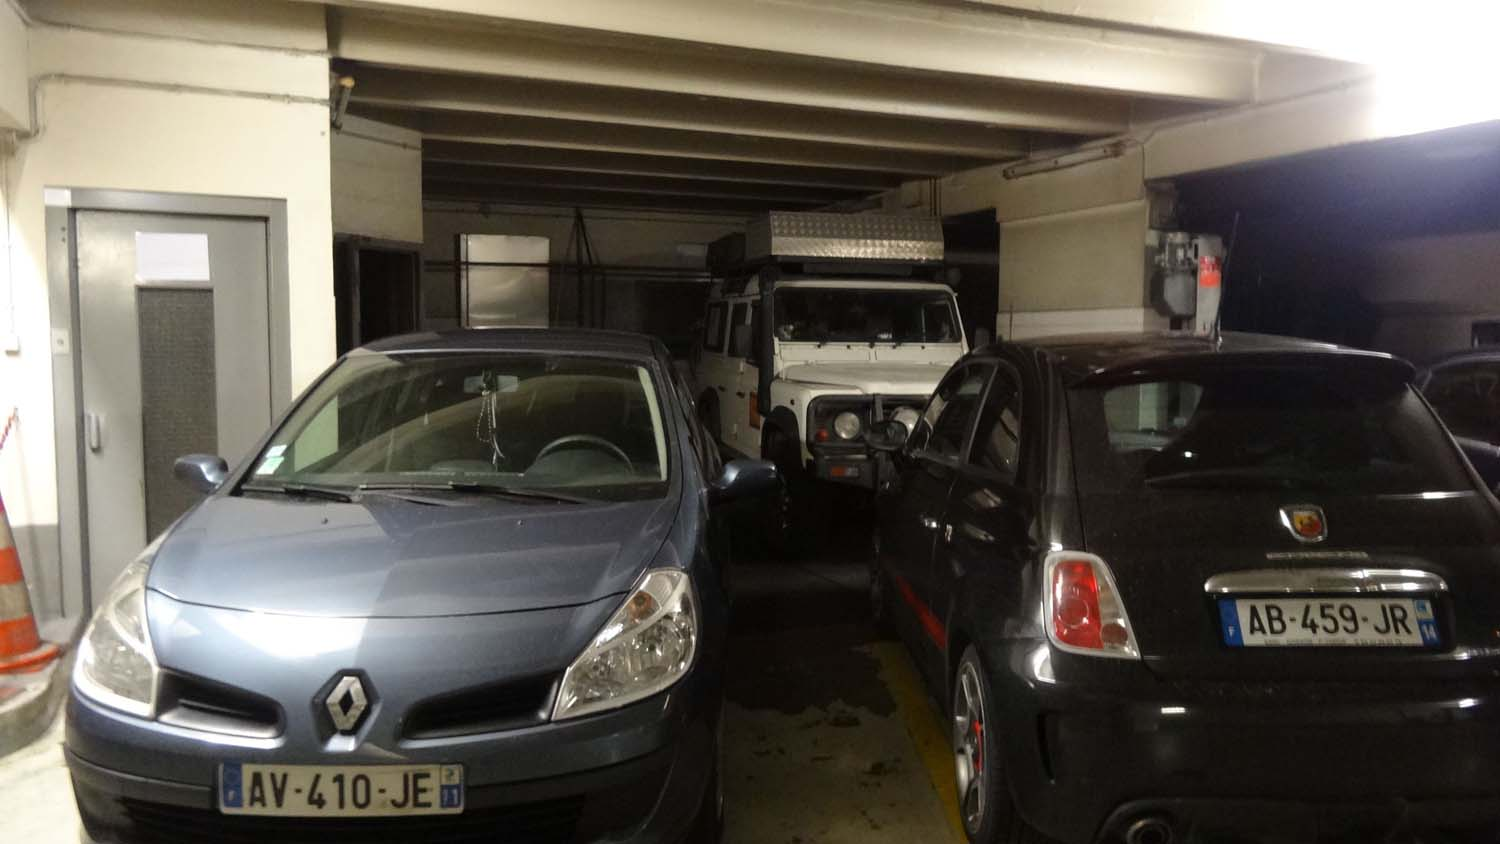 we find an underground carpark in Paris where she just fits!